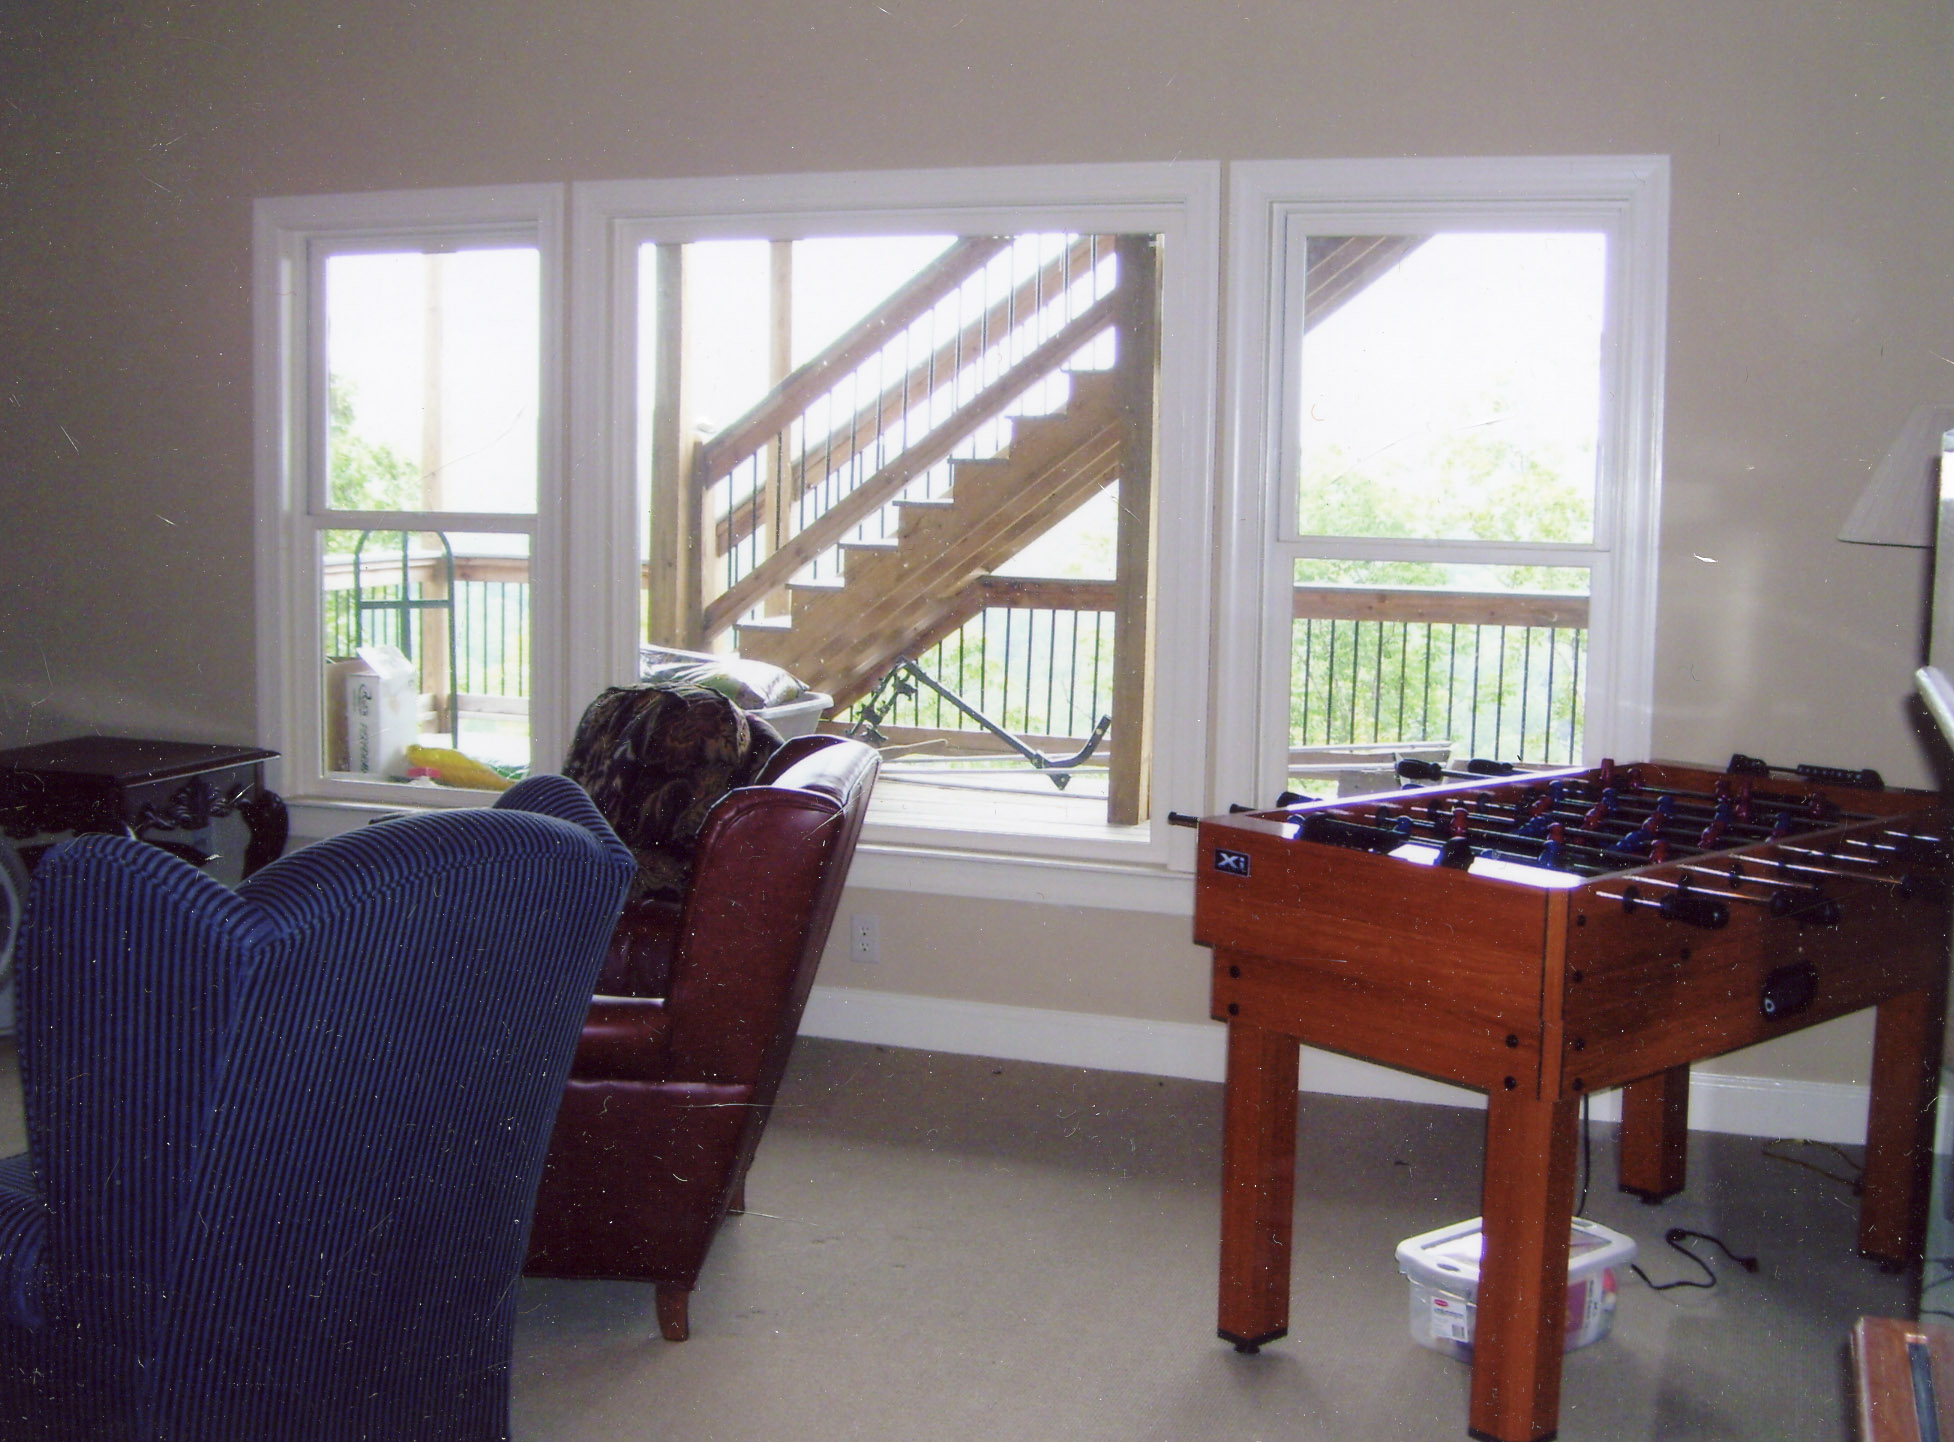 Painting tips how to choose the best wall paint color for - Selecting colors for home interior ...